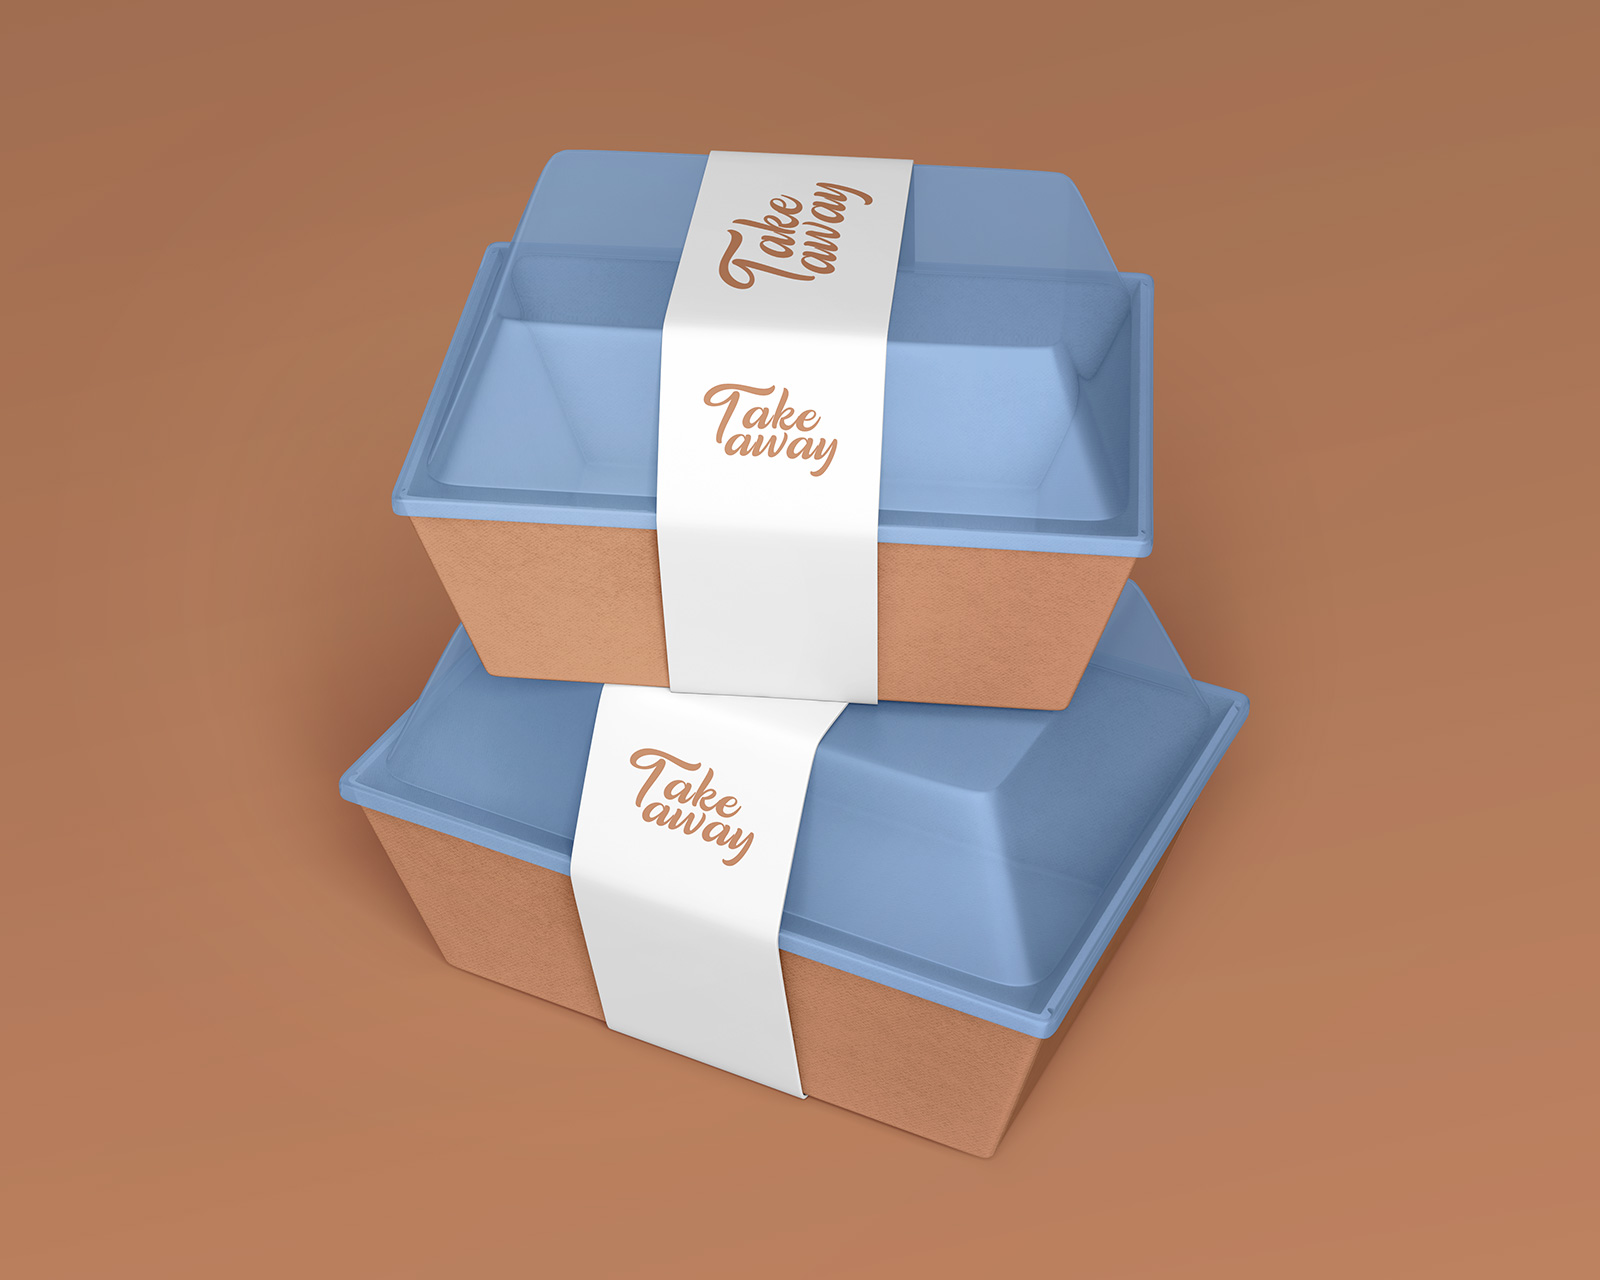 Download Free Take Away Plastic Box Food Container Mockup Psd Set Good Mockups Food Containers Plastic Food Containers Plastic Box Packaging Yellowimages Mockups